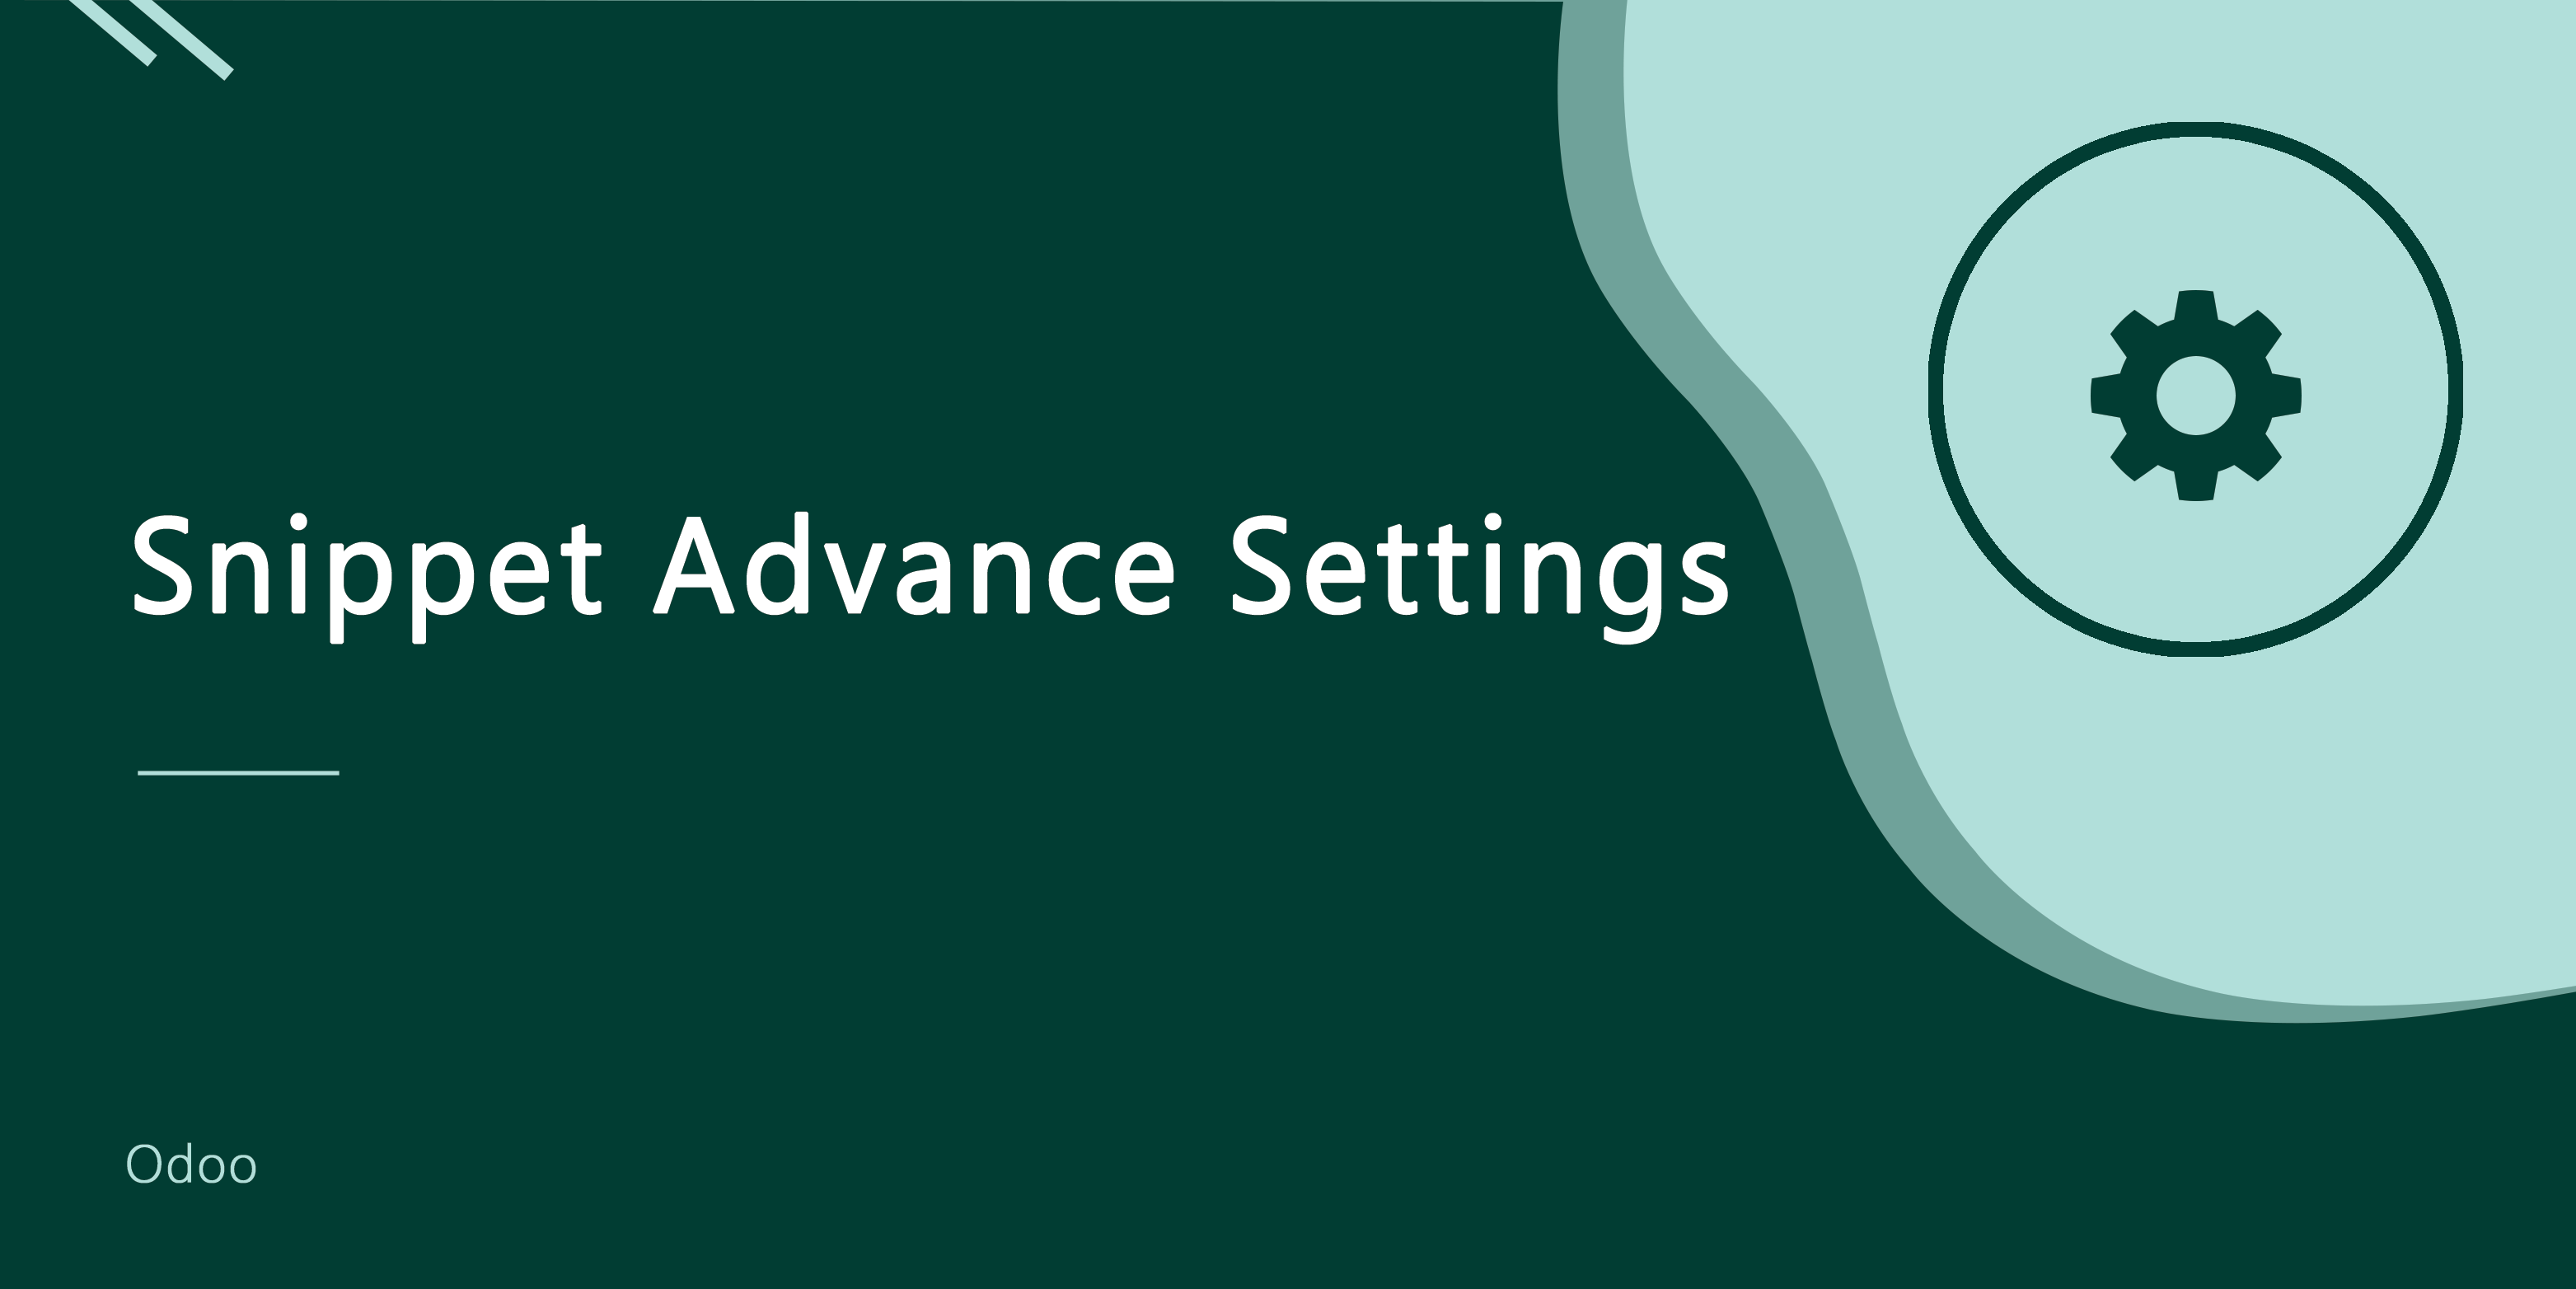 Snippet Advance Settings